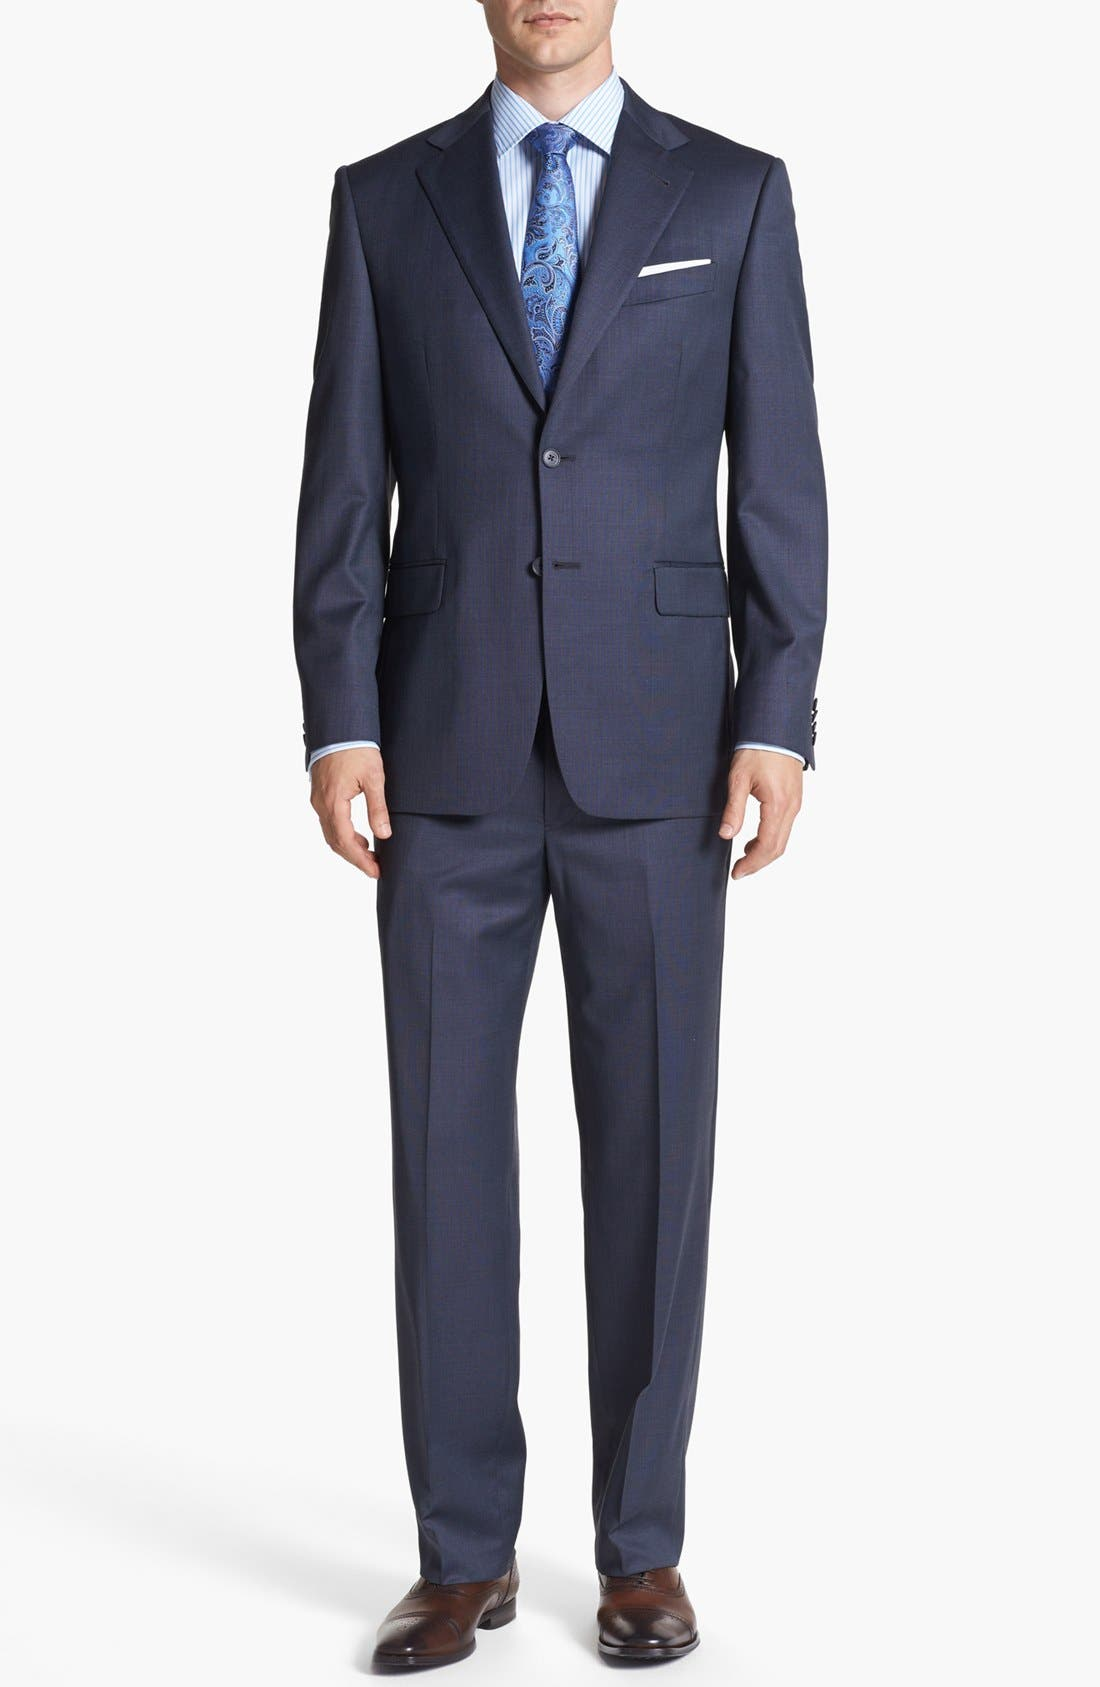 Alternate Image 1 Selected - Joseph Abboud 'Signature Silver' Wool Suit